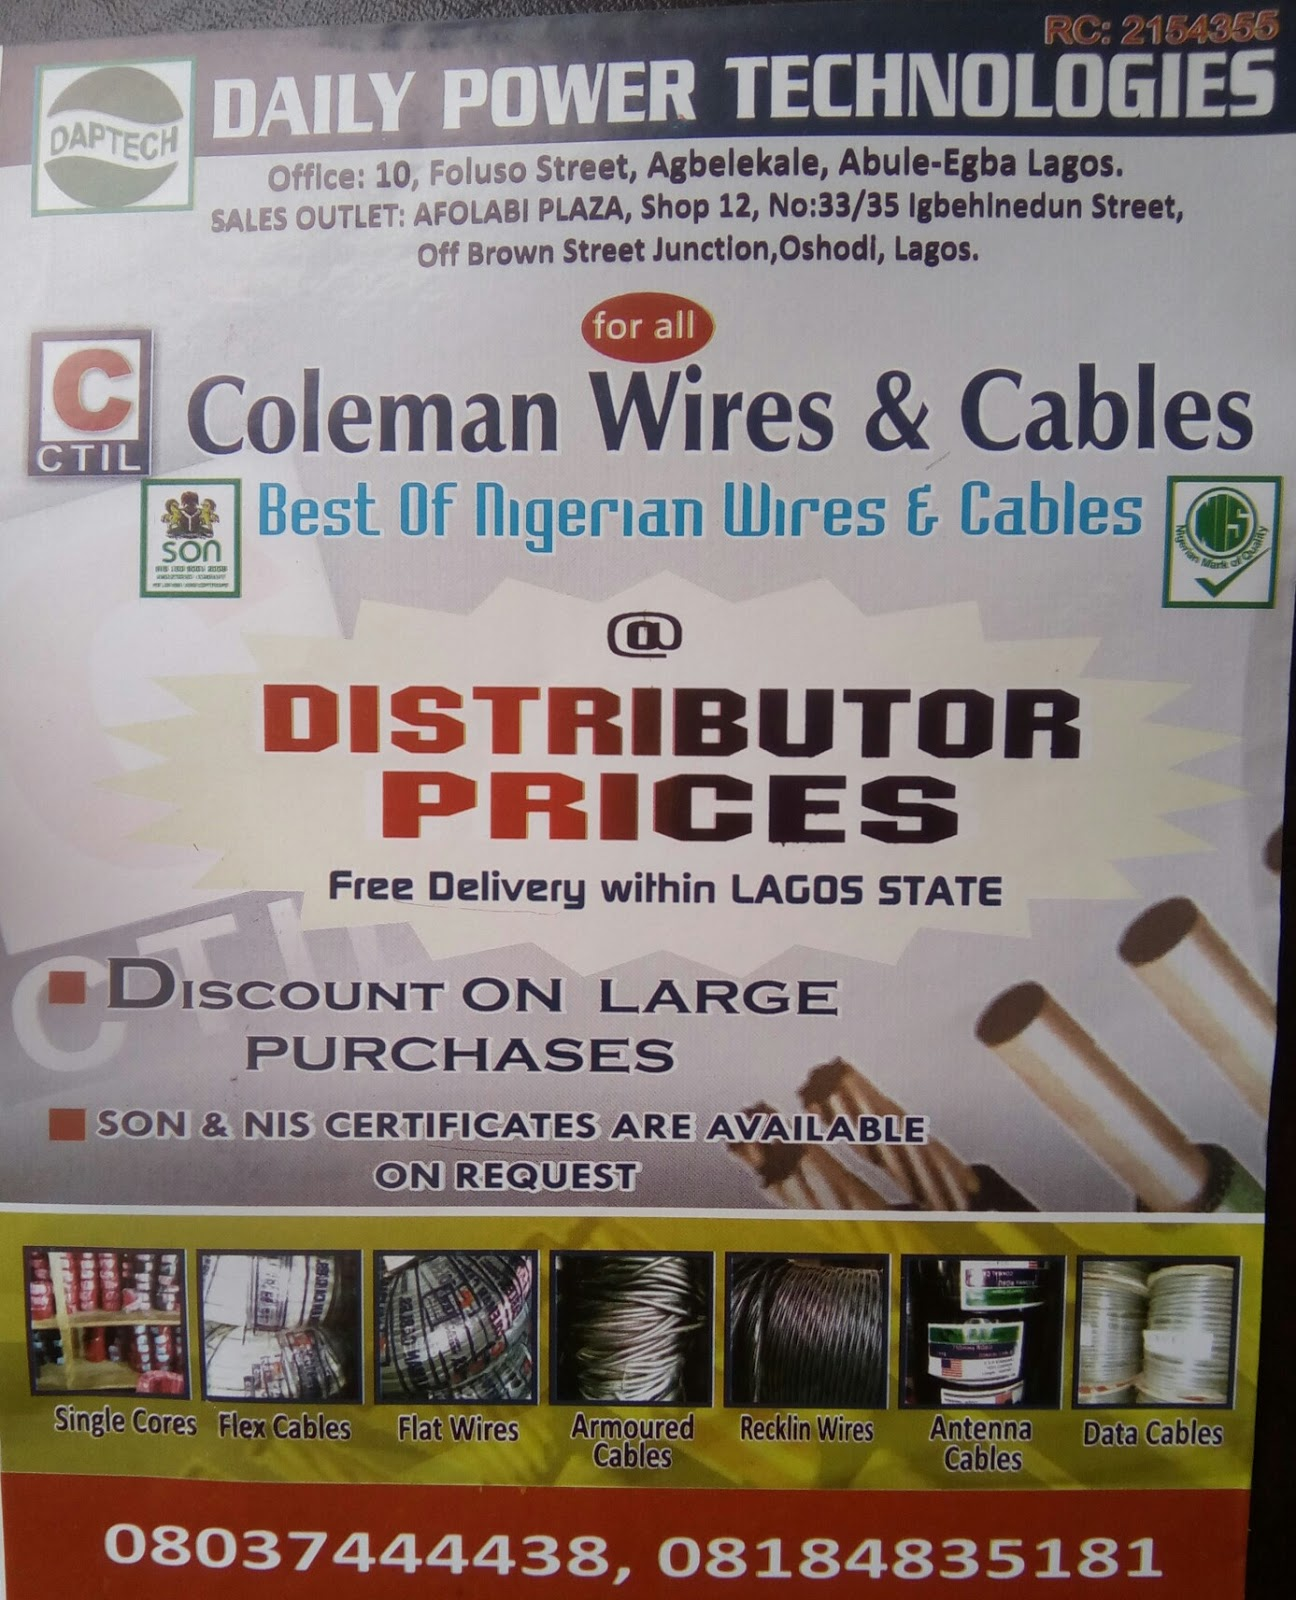 Daily Power Technologies : NIGERIAN WIRES & CABLES